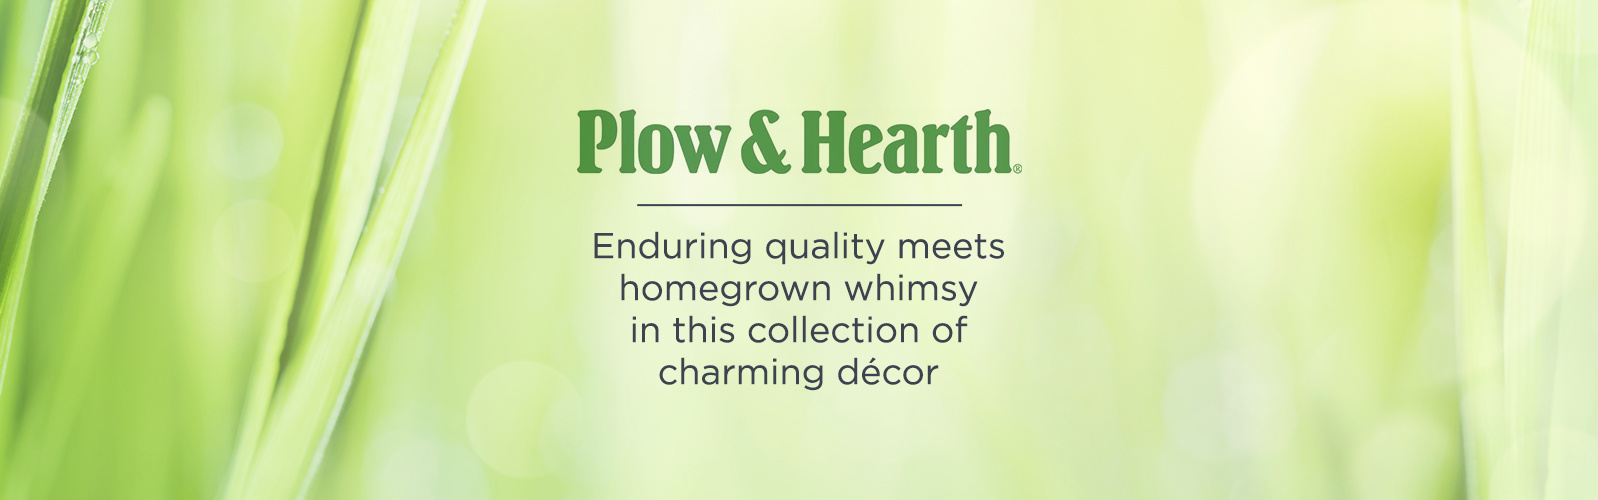 Plow & Hearth. Enduring quality meets homegrown whimsy in this collection of charming outdoor décor